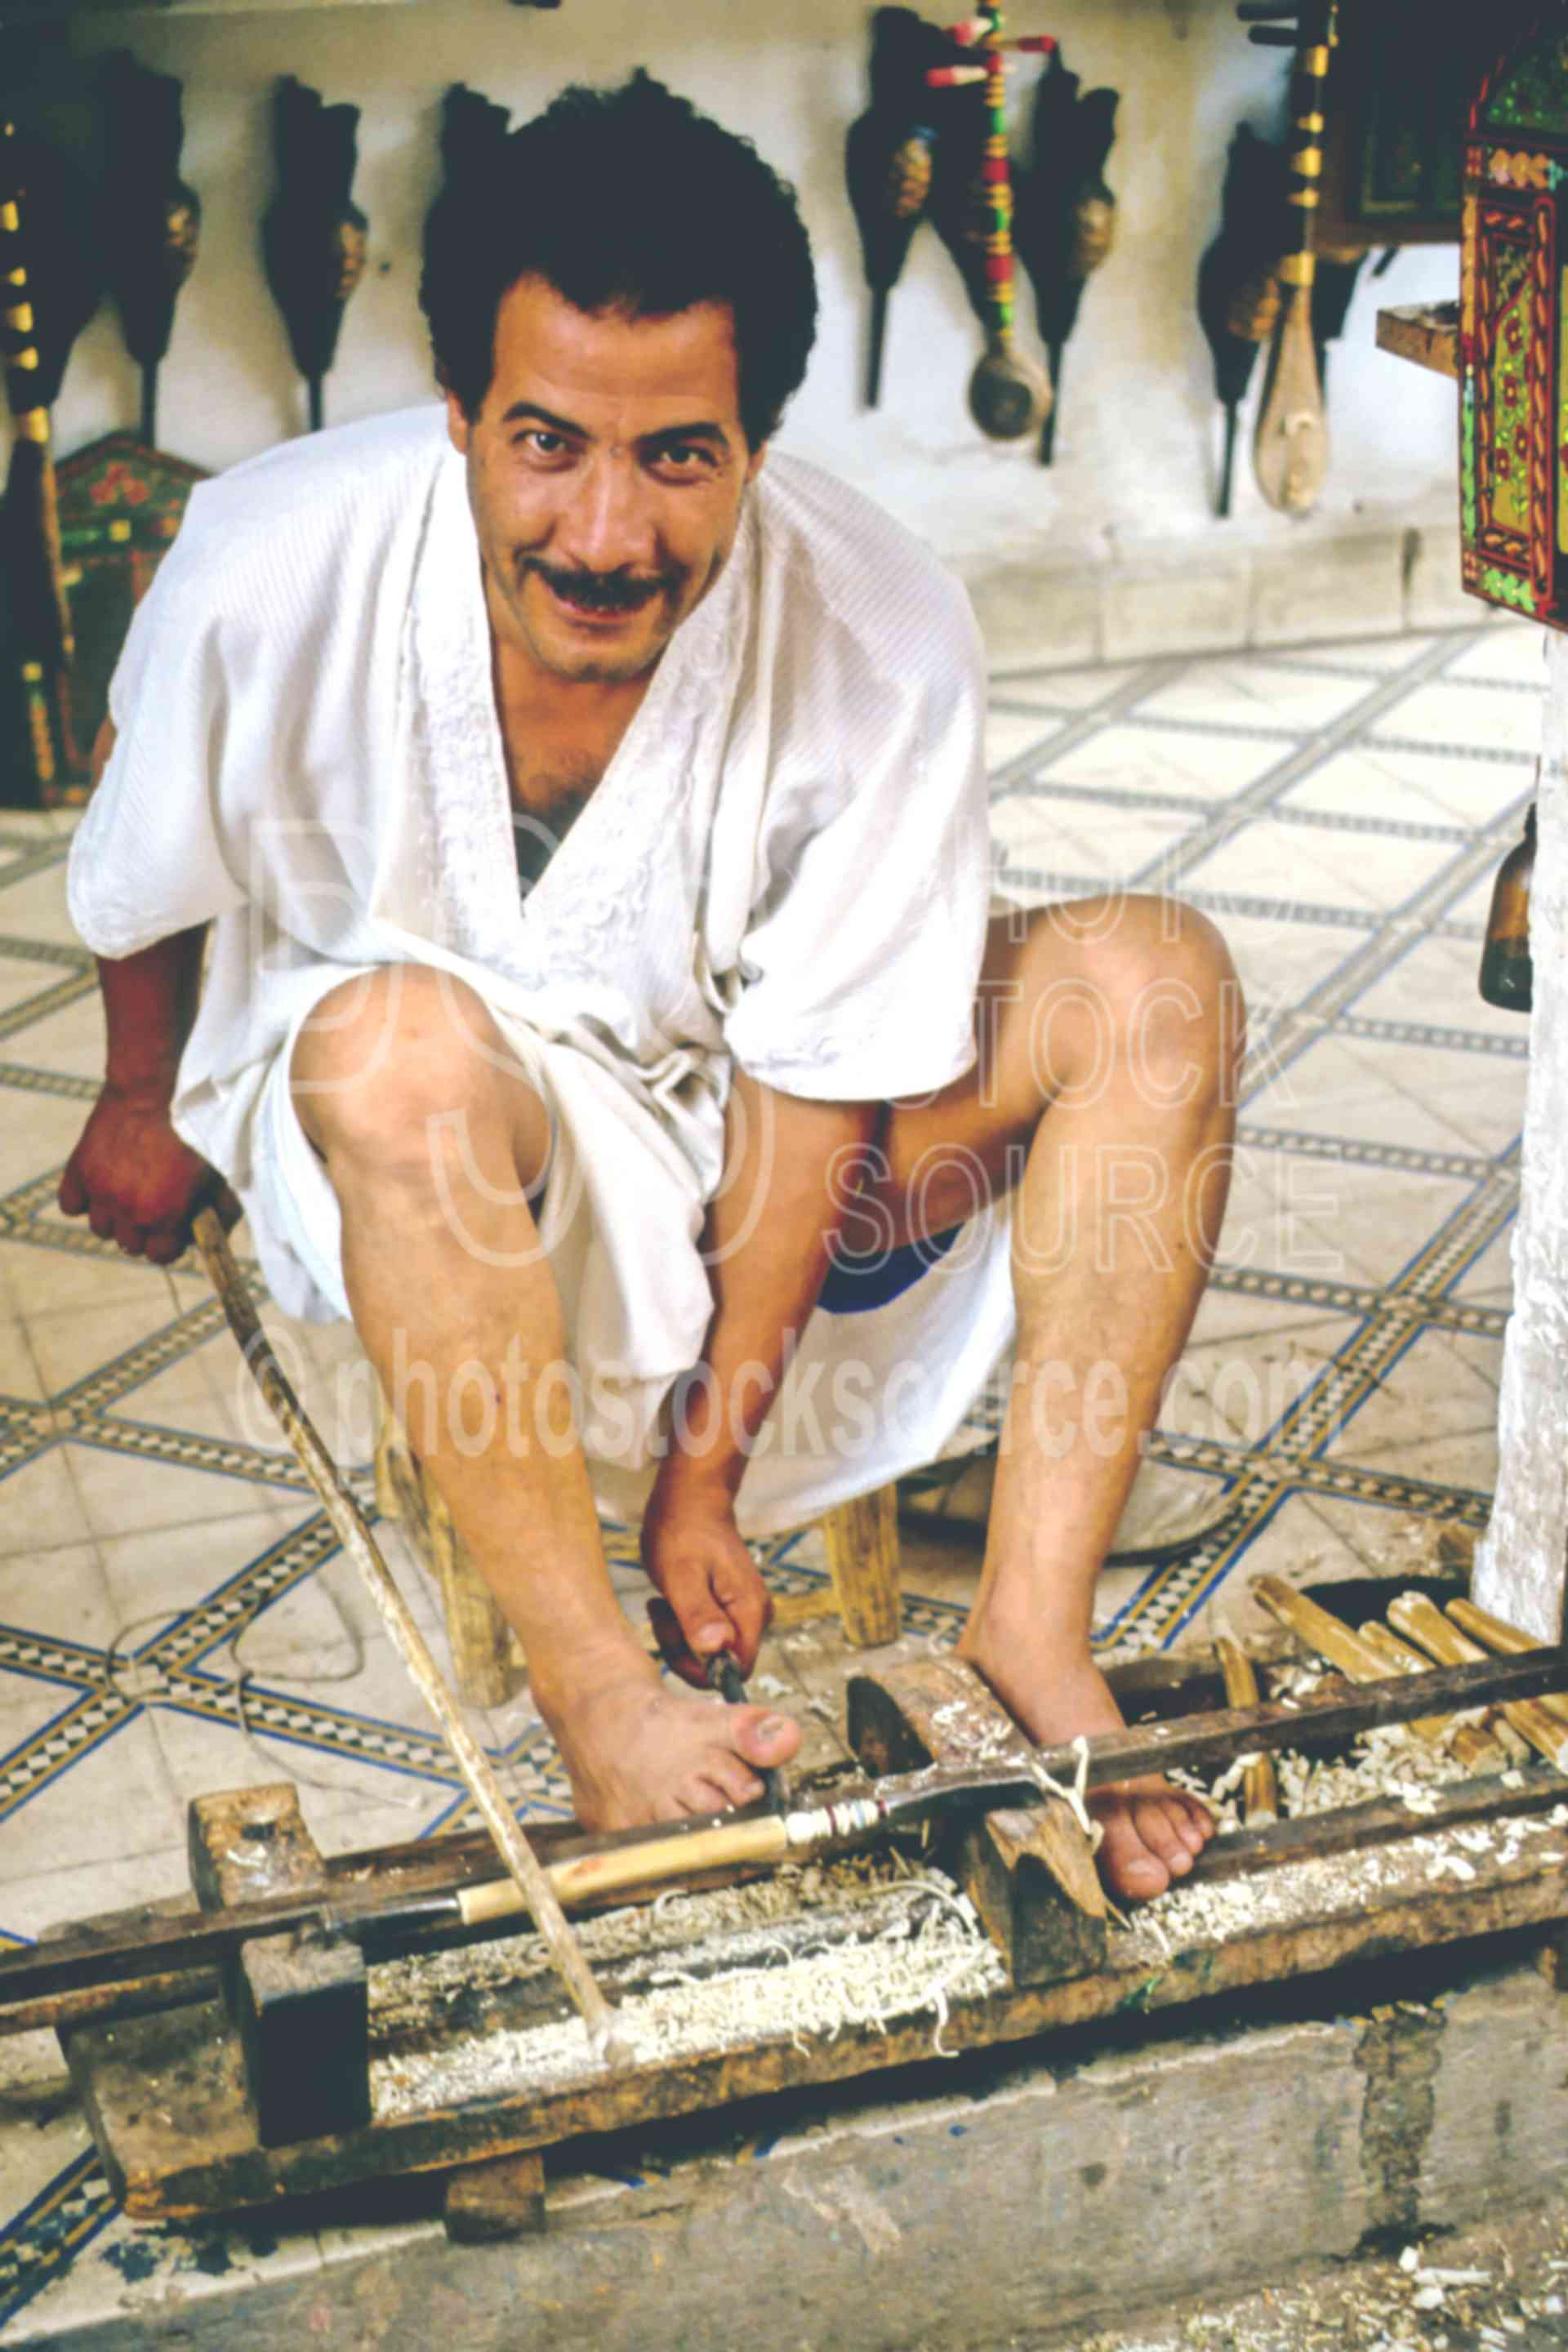 Foot Lathe,artist,carve,lathe,mans,work,worker,tools instruments,morocco markets